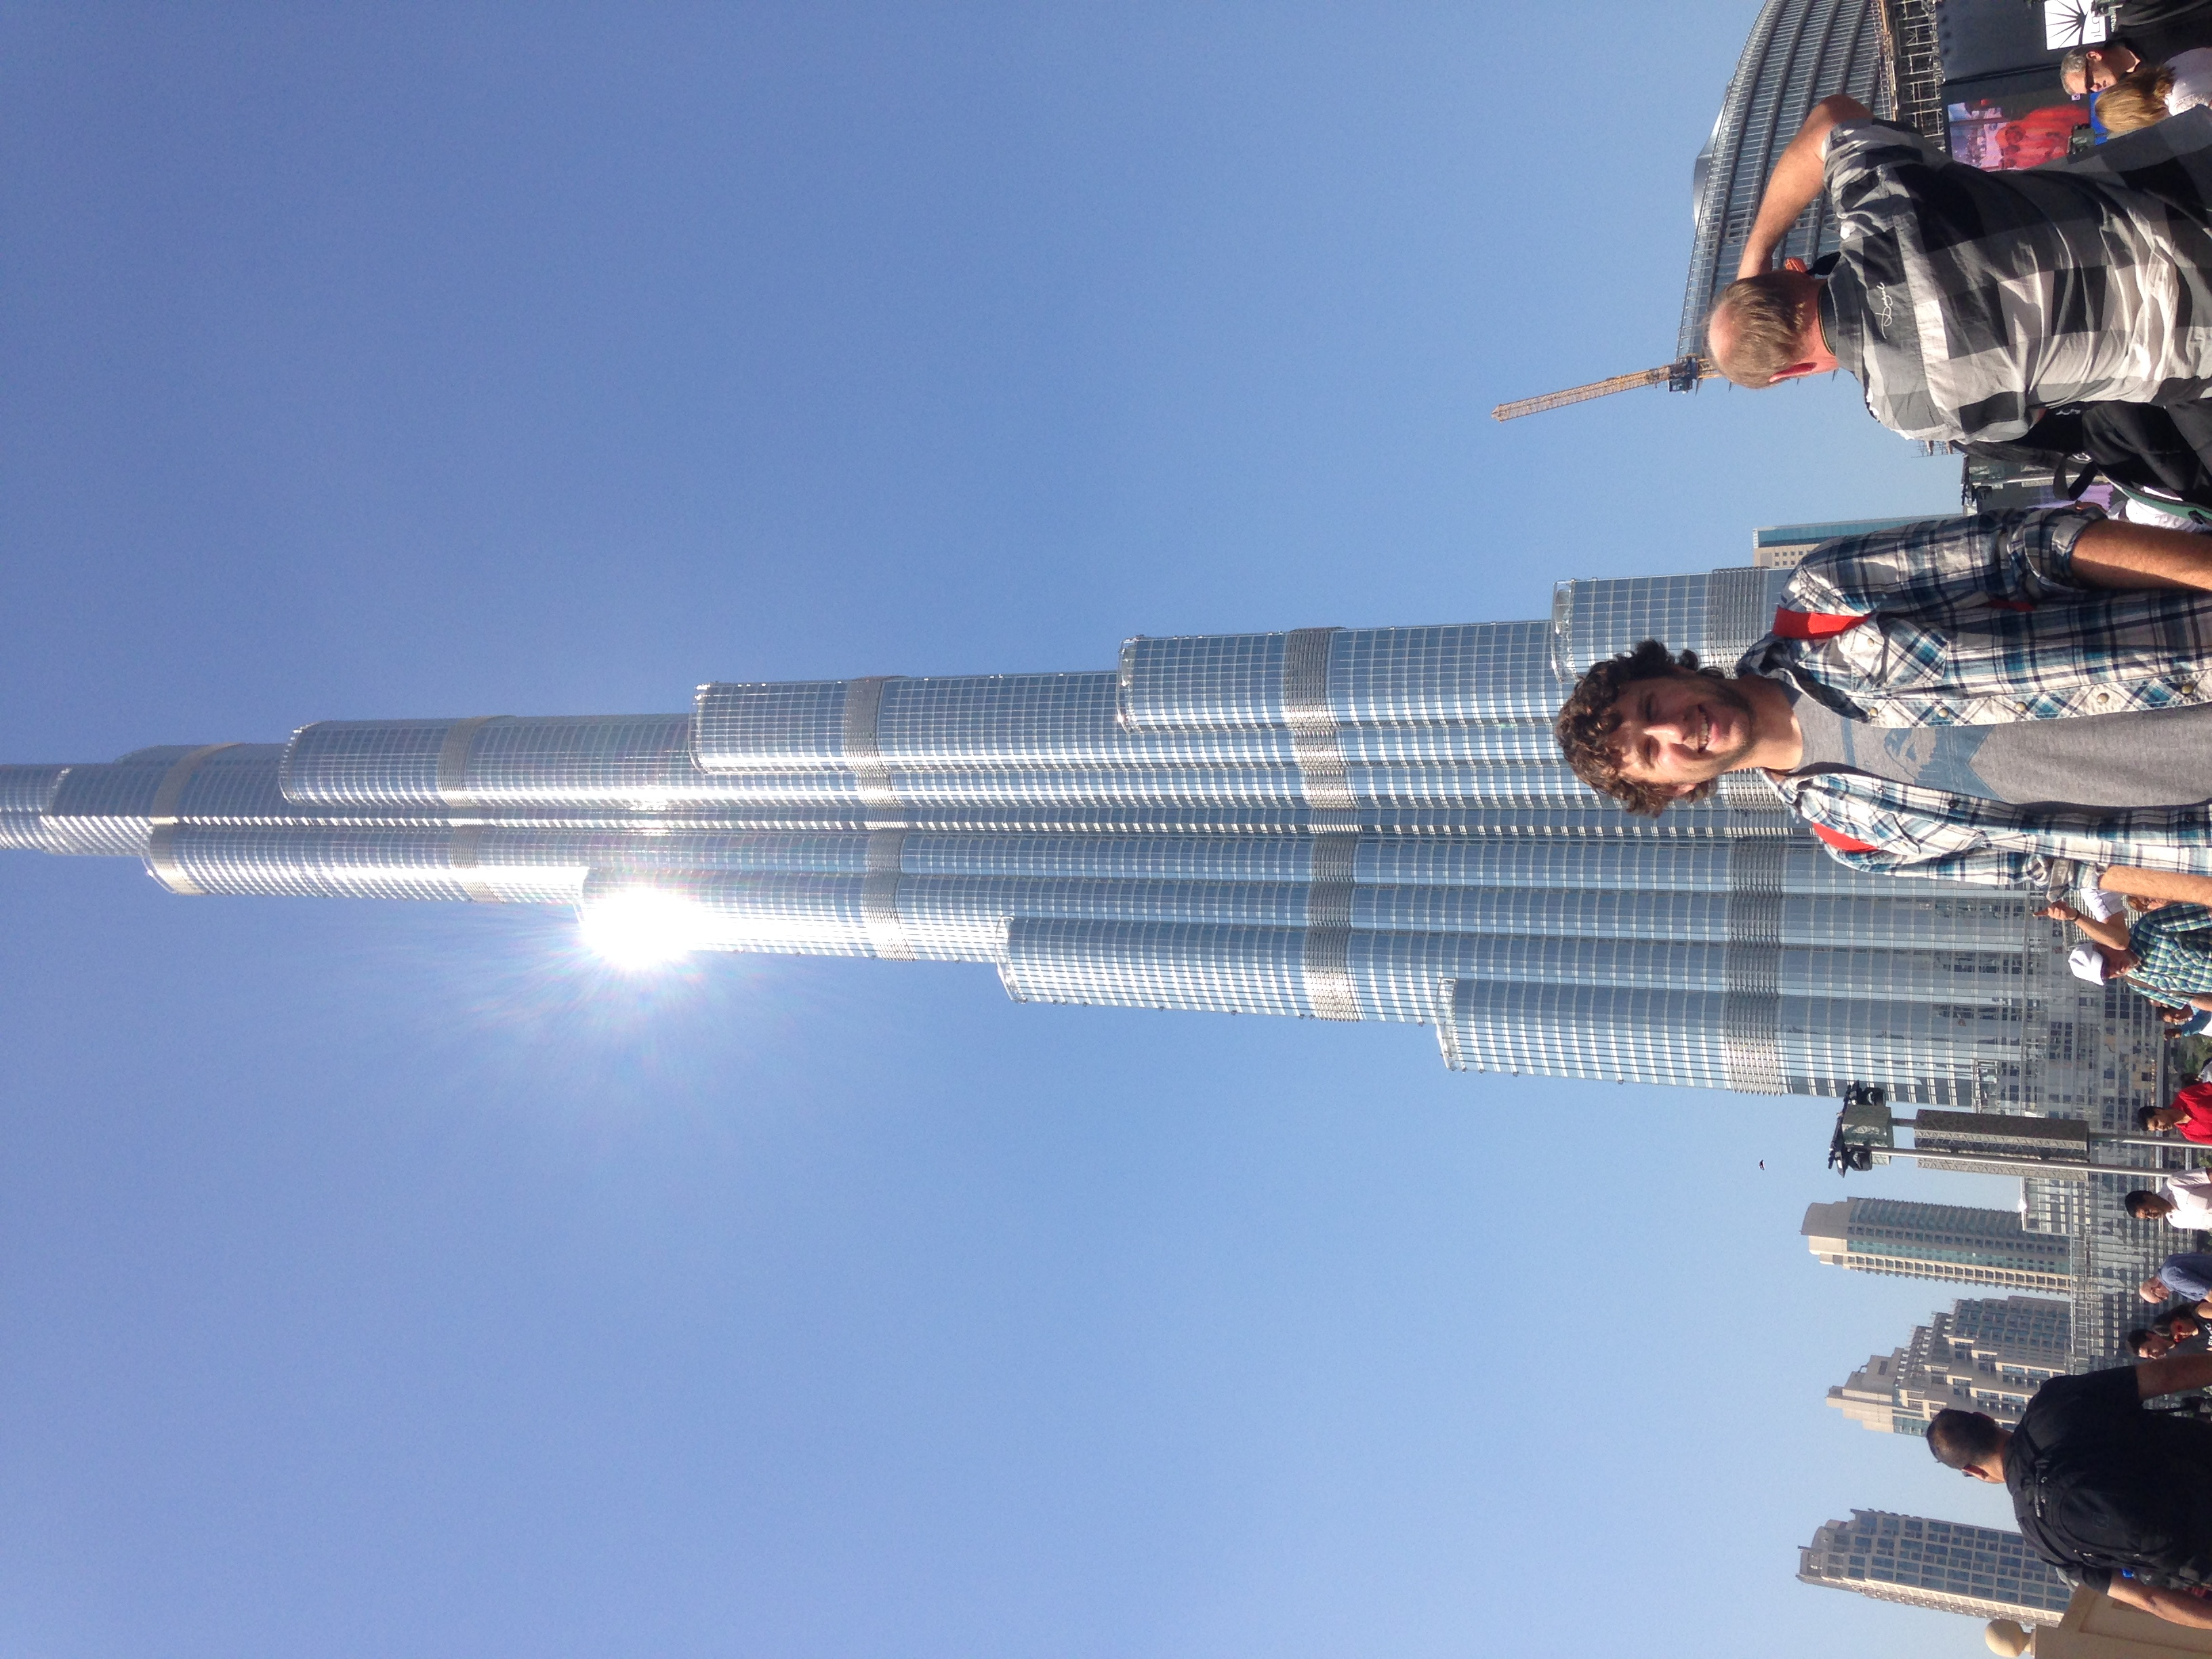 Me in front of the Burj Khalifa